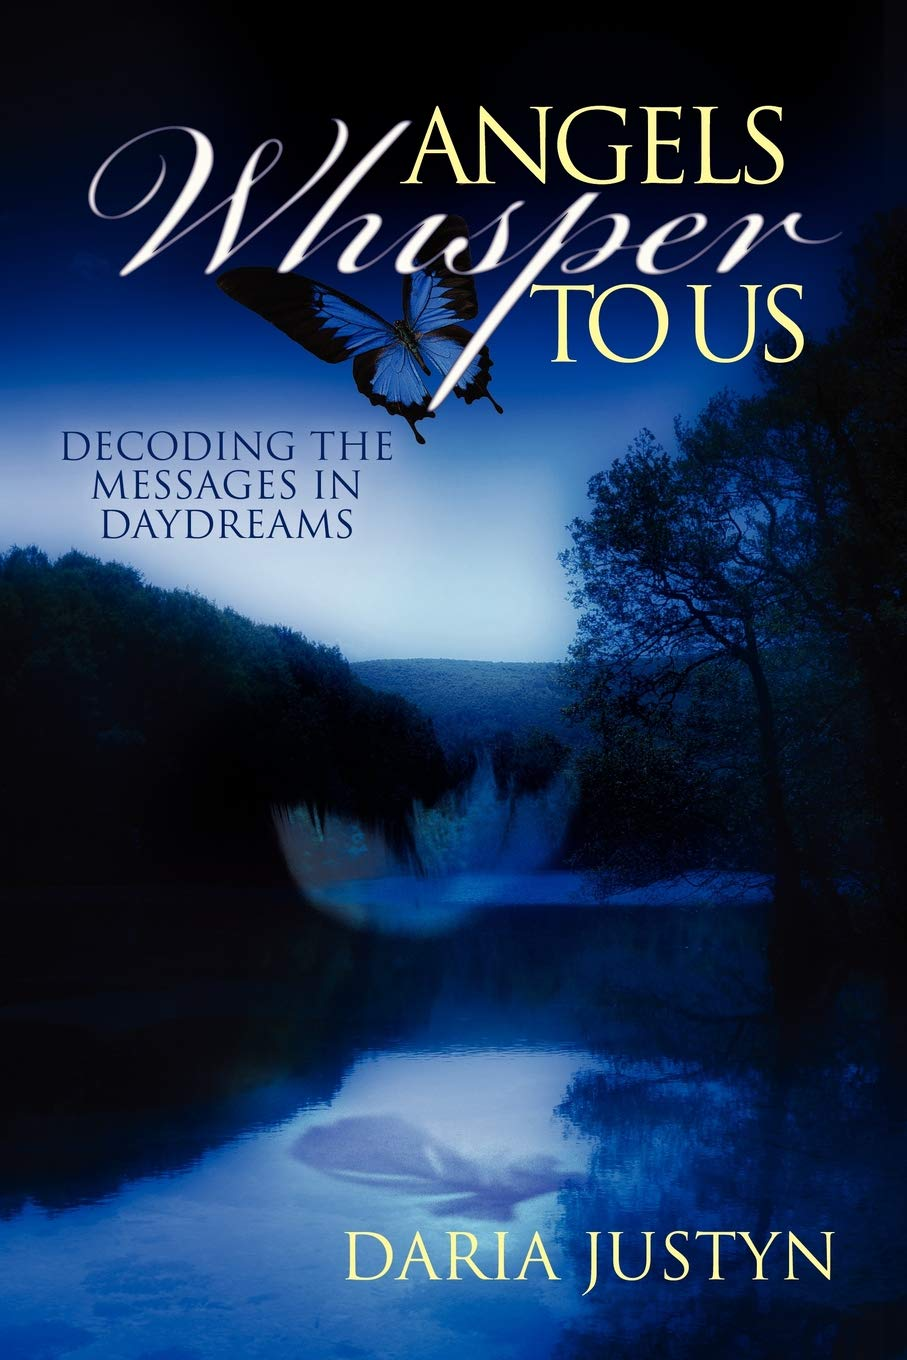 Angels Whisper to Us: Decoding the Messages in Daydreams